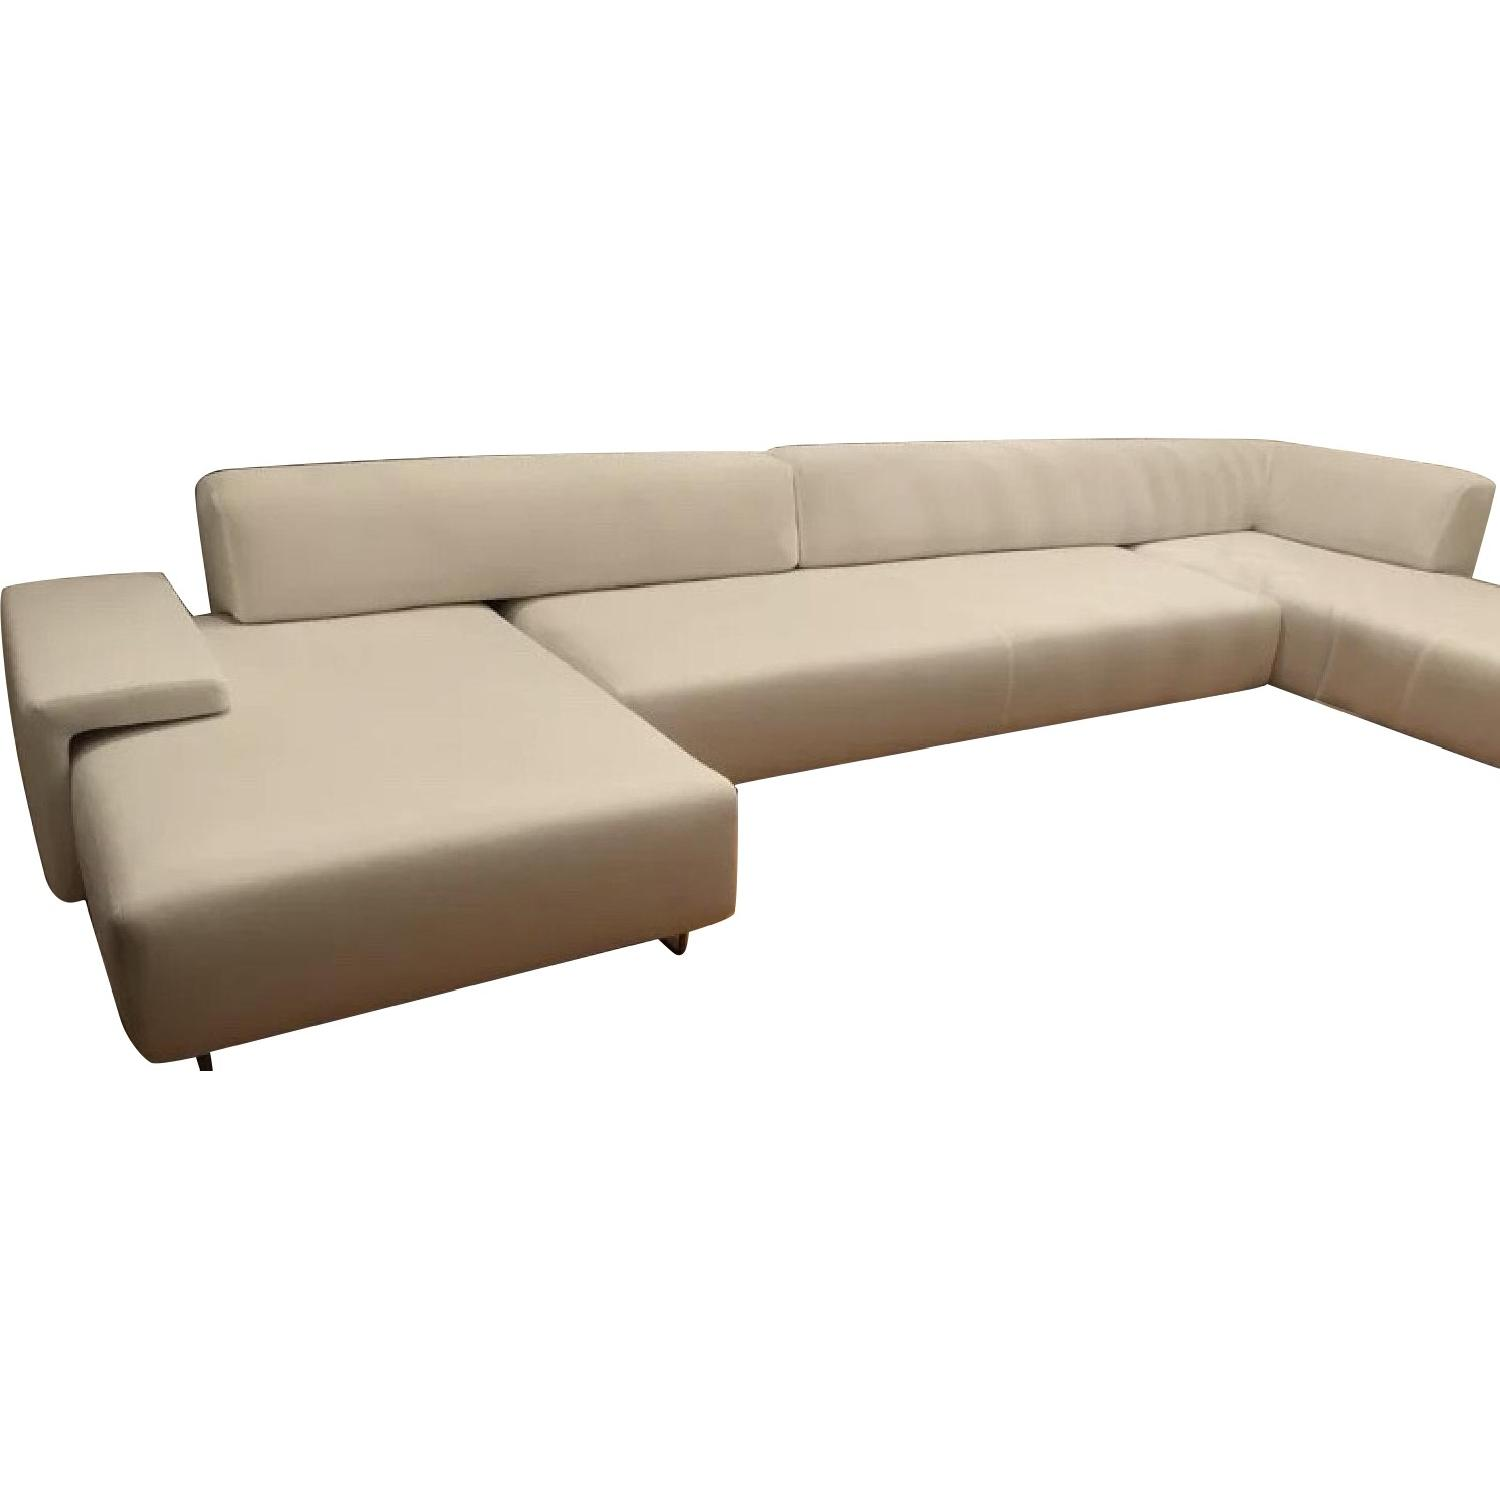 Moroso Italia Lowland Contemporary White Sectional Sofa Aptdeco